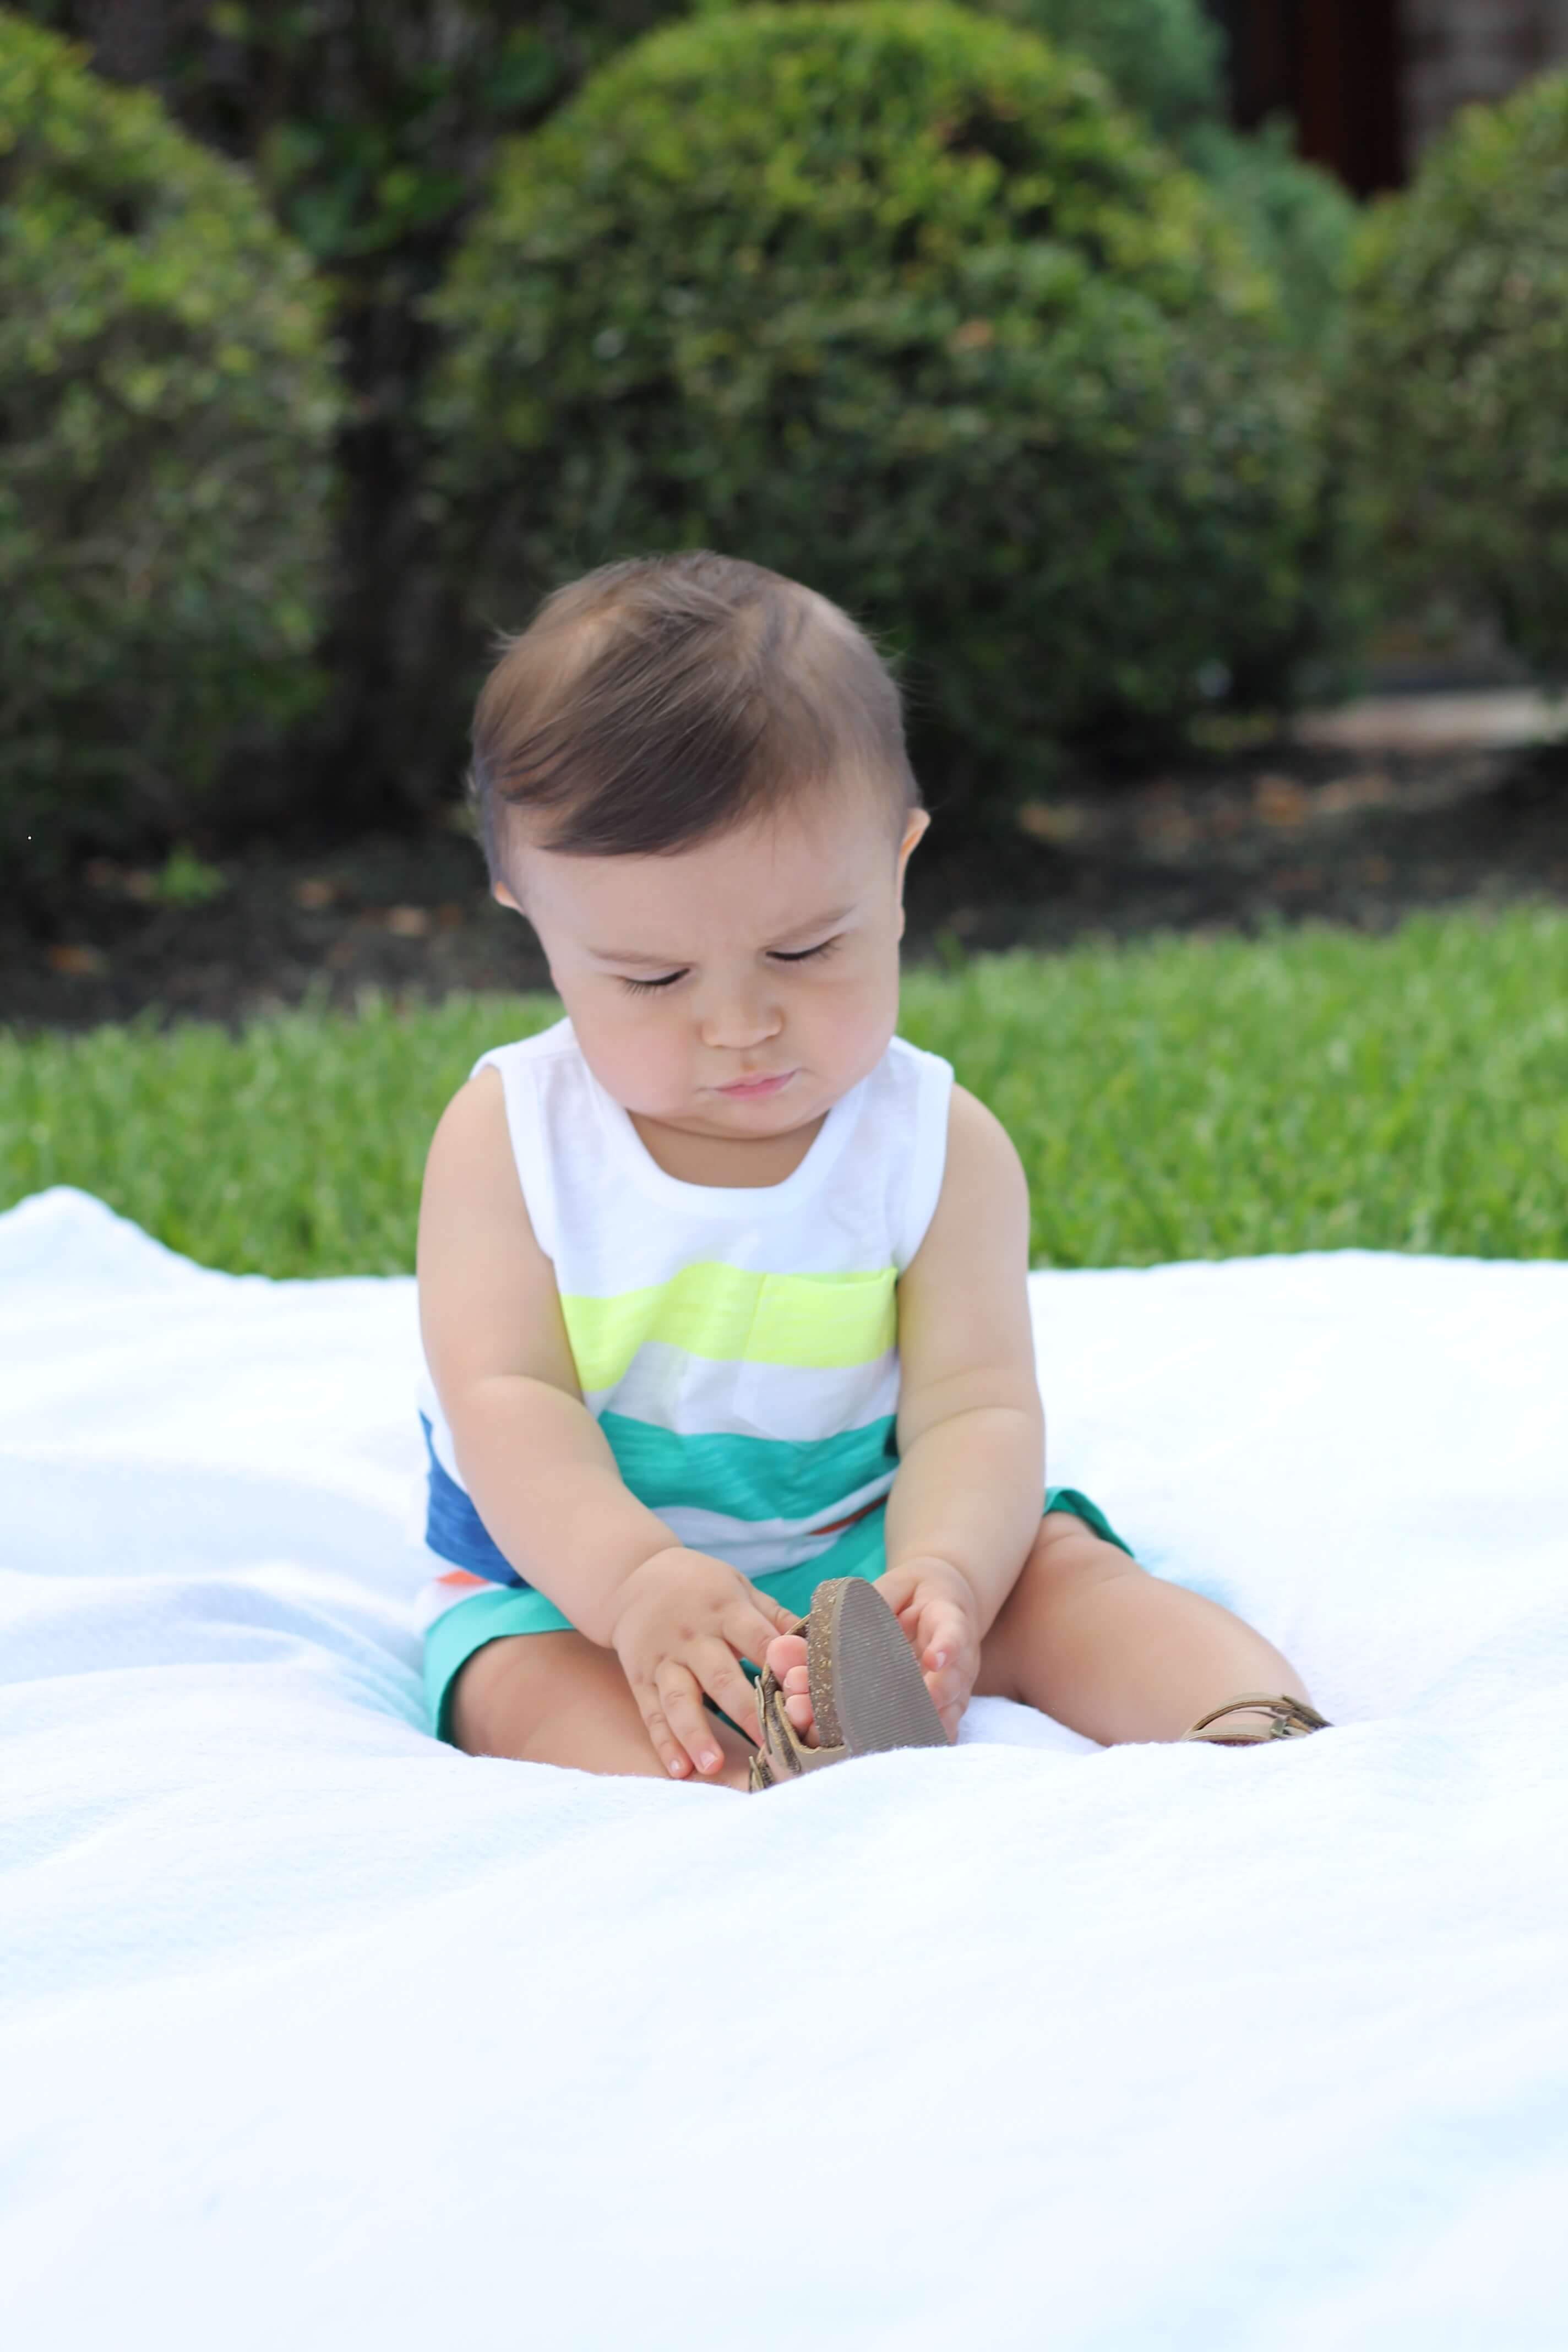 The ultimate guide to baby clothes for your baby's first year. What you really need and how much. #lovecarters (AD)